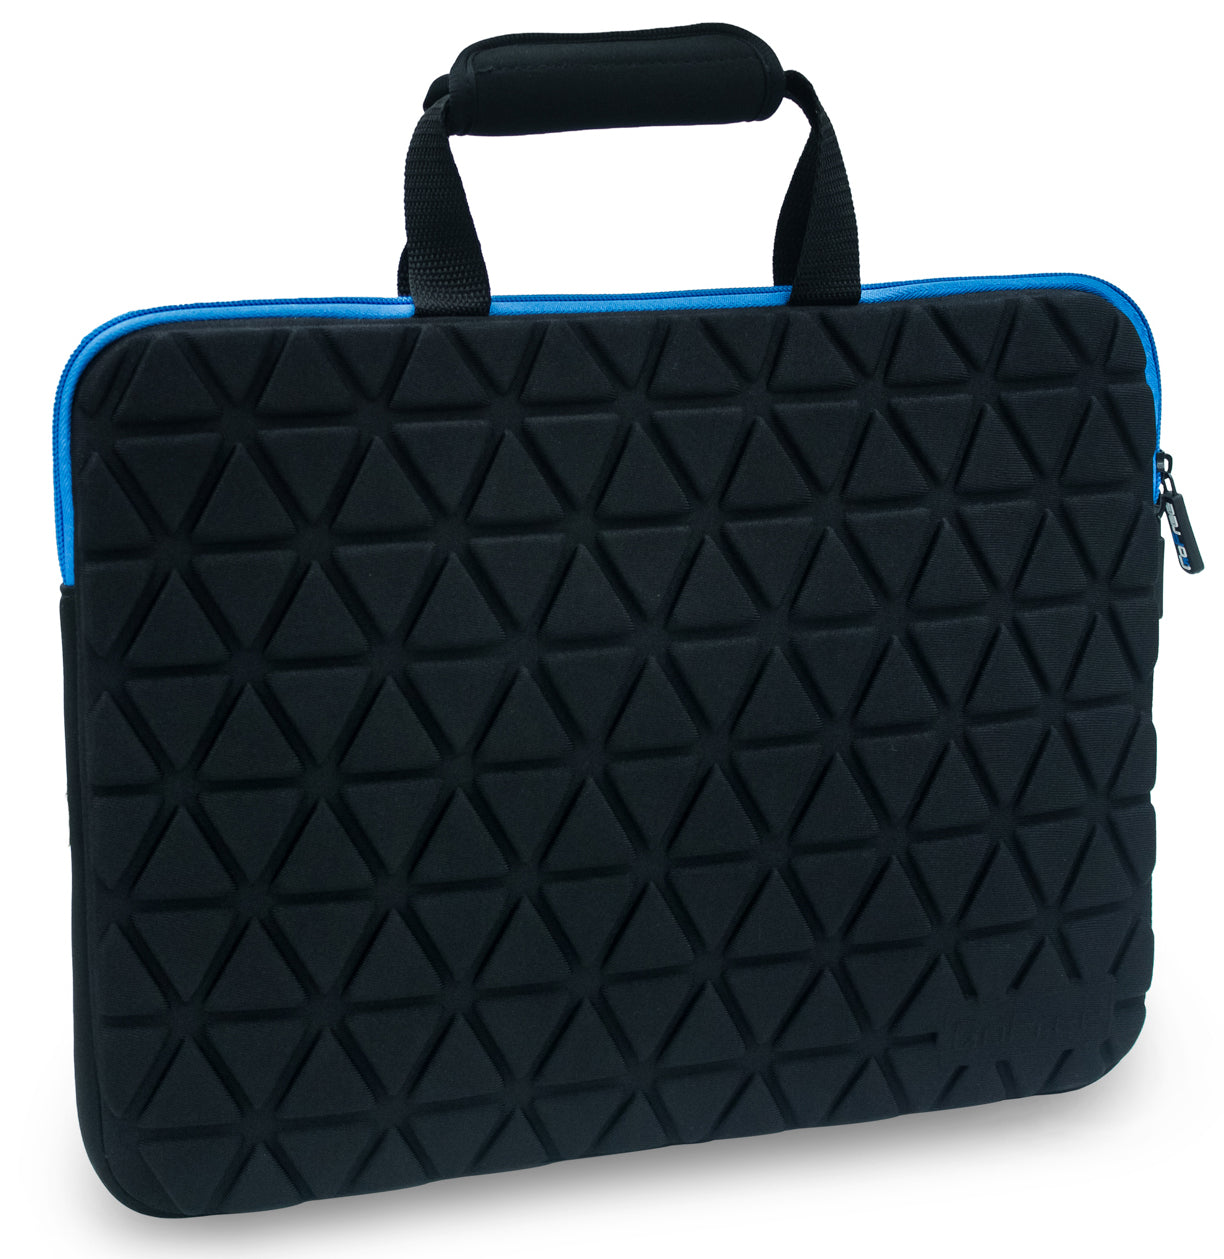 GoFree Guardian Series Ultra Compact 15 inch Laptop Sleeve Bag for 14/15/15.6 inch laptops (Black w/ Azure Blue Accents)